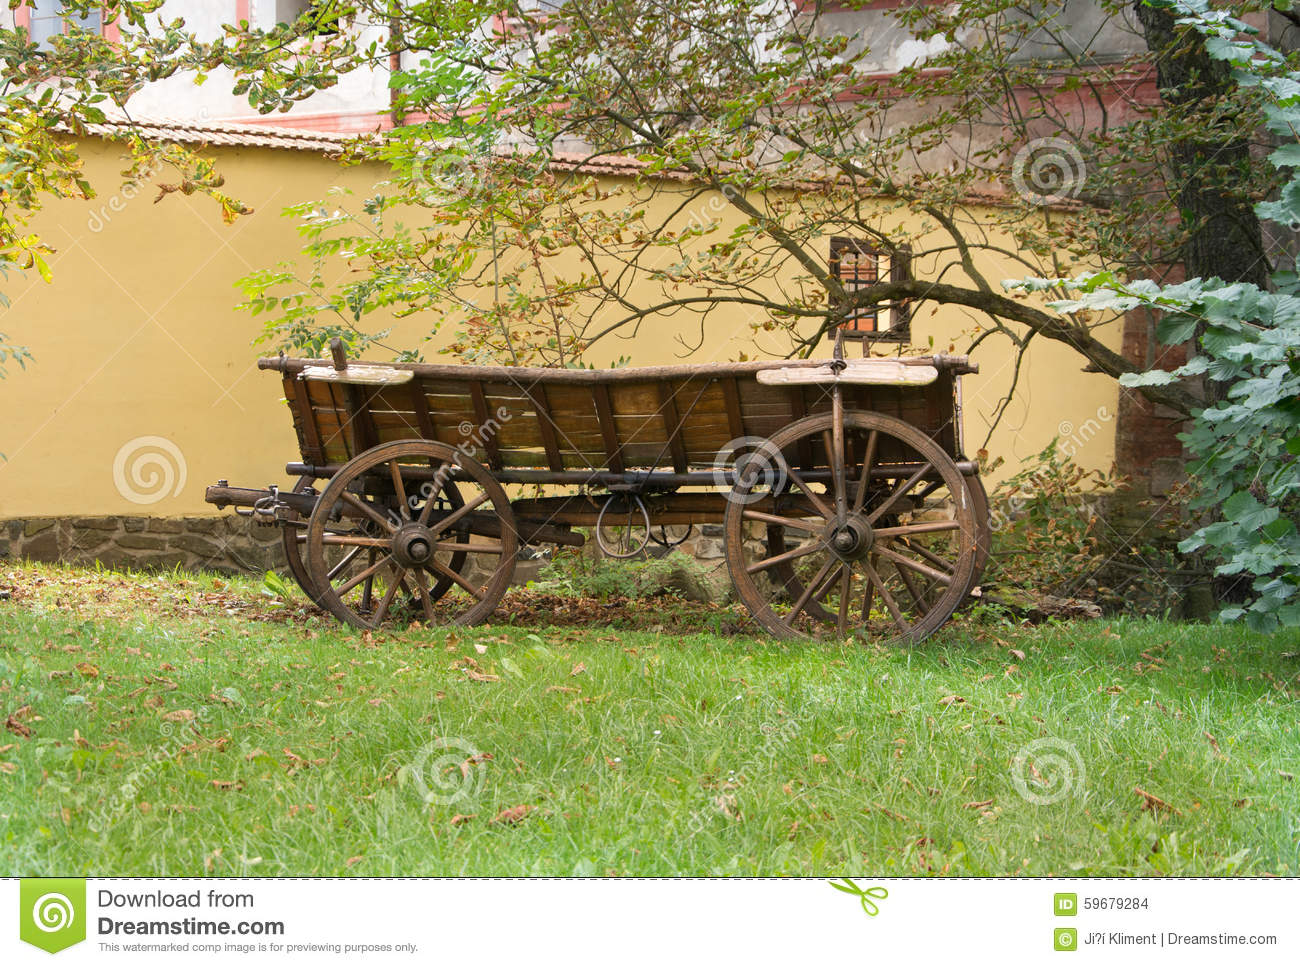 Old Wooden carriage stock photo. Image of beauty, landscape - 59679284